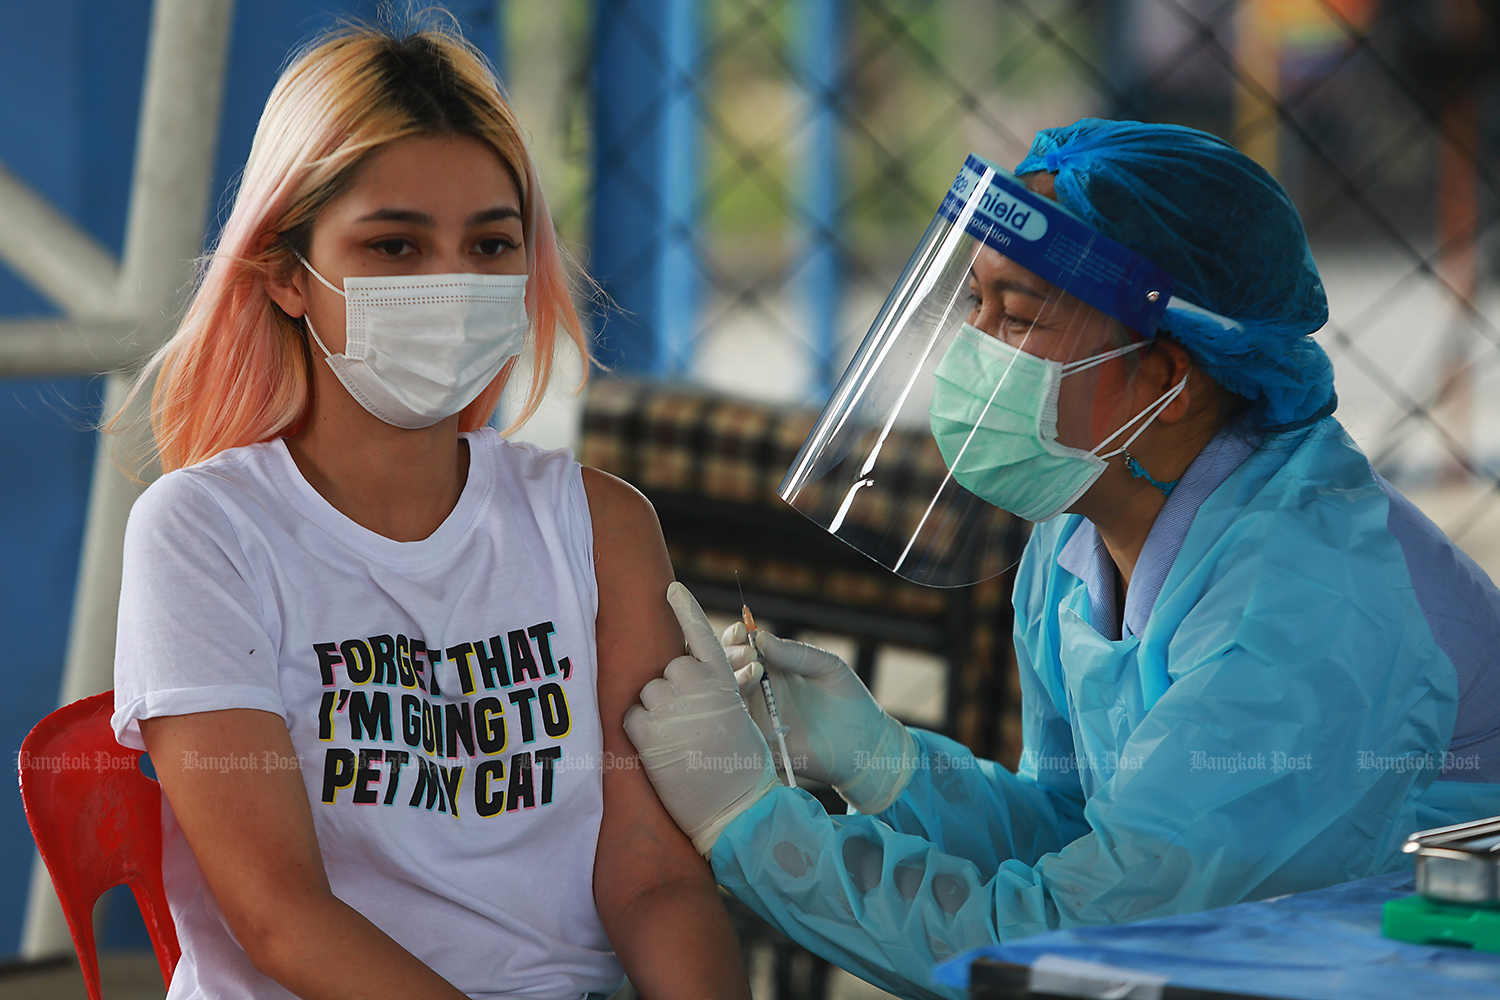 A resident of Watthana district in Bangkok is on Wednesday injected with vaccine against Covid-19 at the Sang Thip sports complex on Soi Pridi Banomyong 2 as she is considered as being in an at-risk group after a new cluster of Covid-19 from bars and pubs in the Thong Lor area emerged. (Photo by Somchai Poomlard)